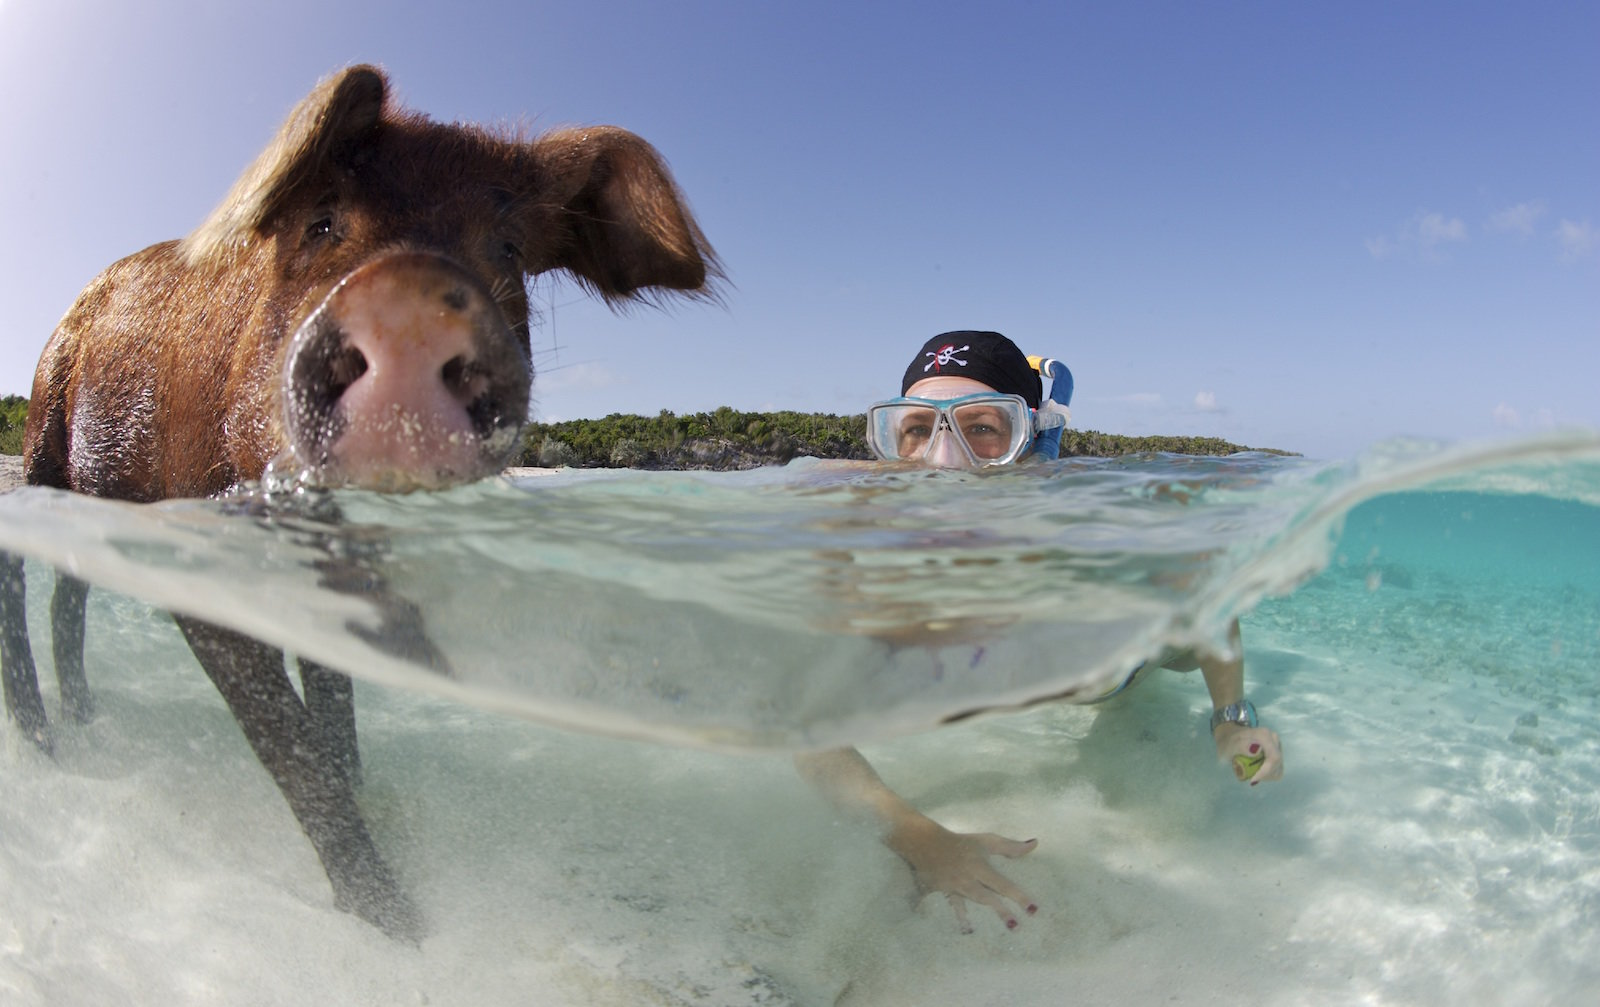 BAHAMAS - DATE UNSPECIFIED: ***EXCLUSIVE*** Nadine Umbscheiden snorkels with a pig, in the Bahamas. Nadine, a German underwater photographer was dubbed the  pig whisperer  for her ability to swim with the pigs. Swimming in the crystal clear waters off the